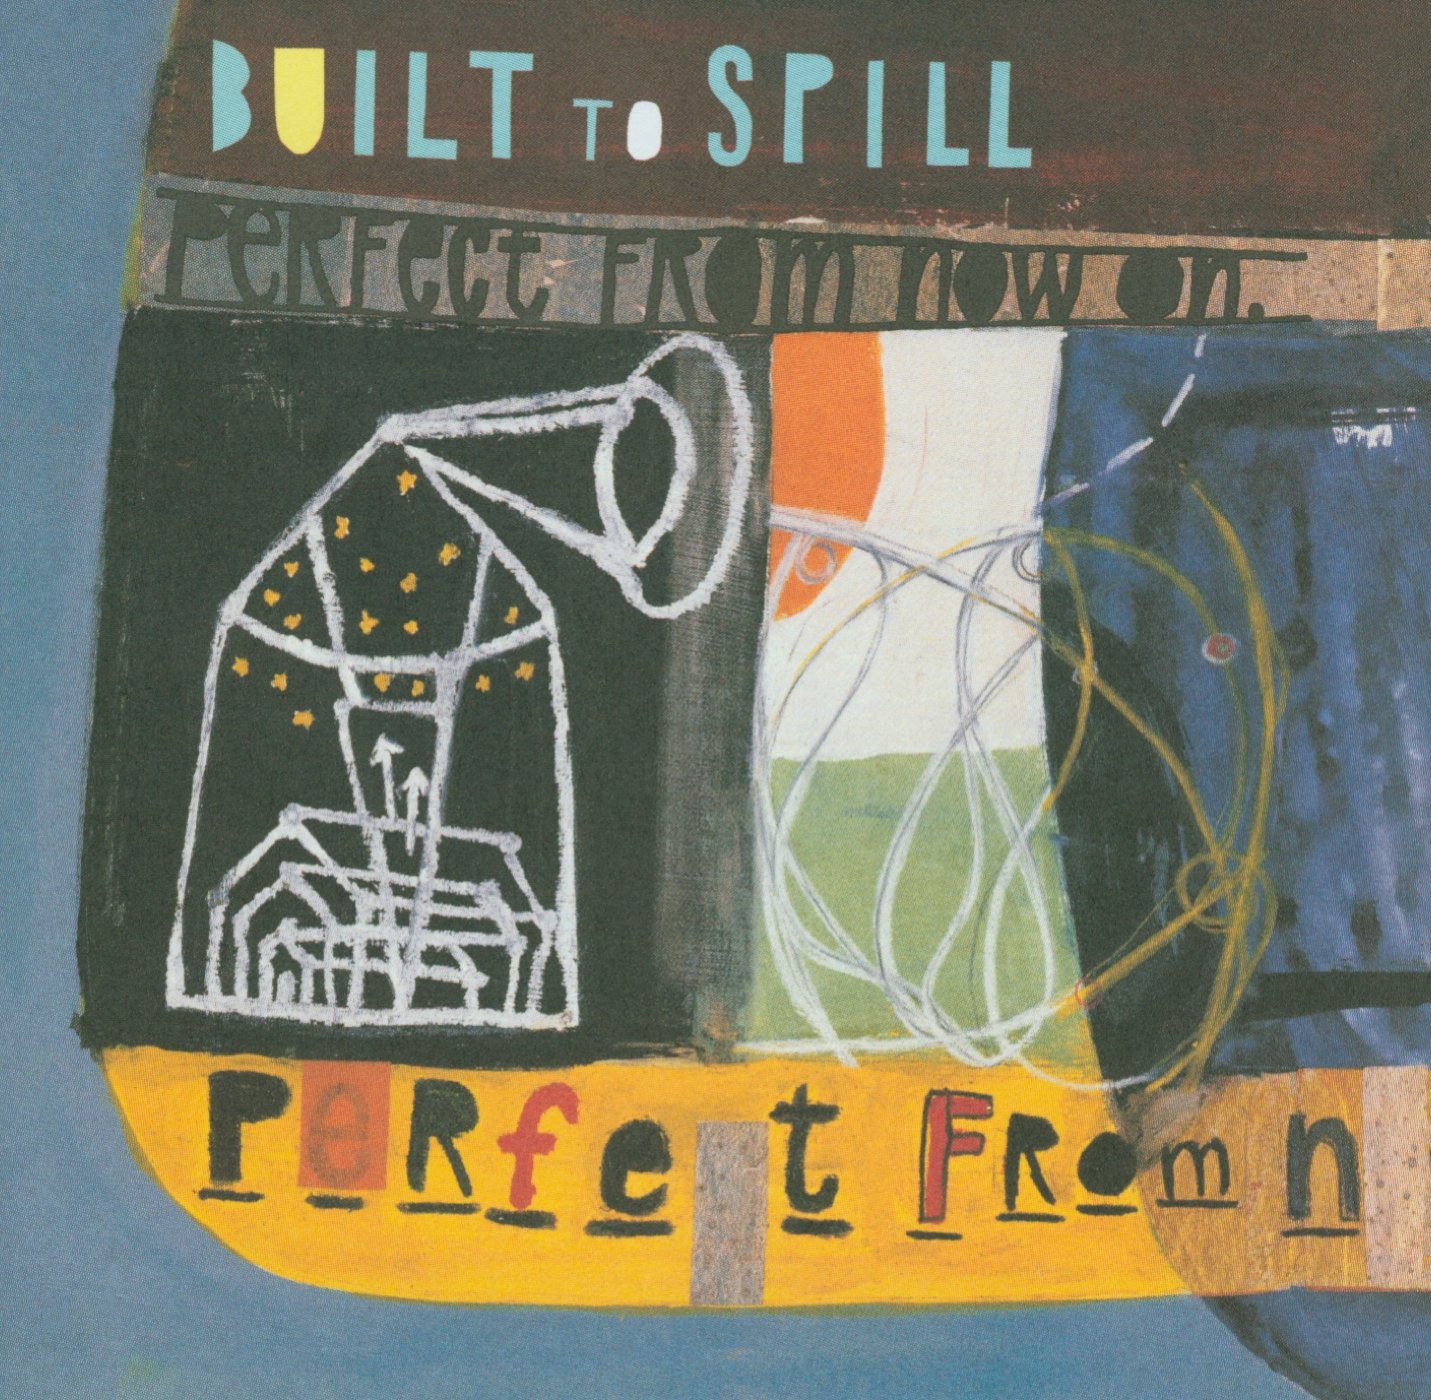 509 Perfect From Now On by Built To Spill